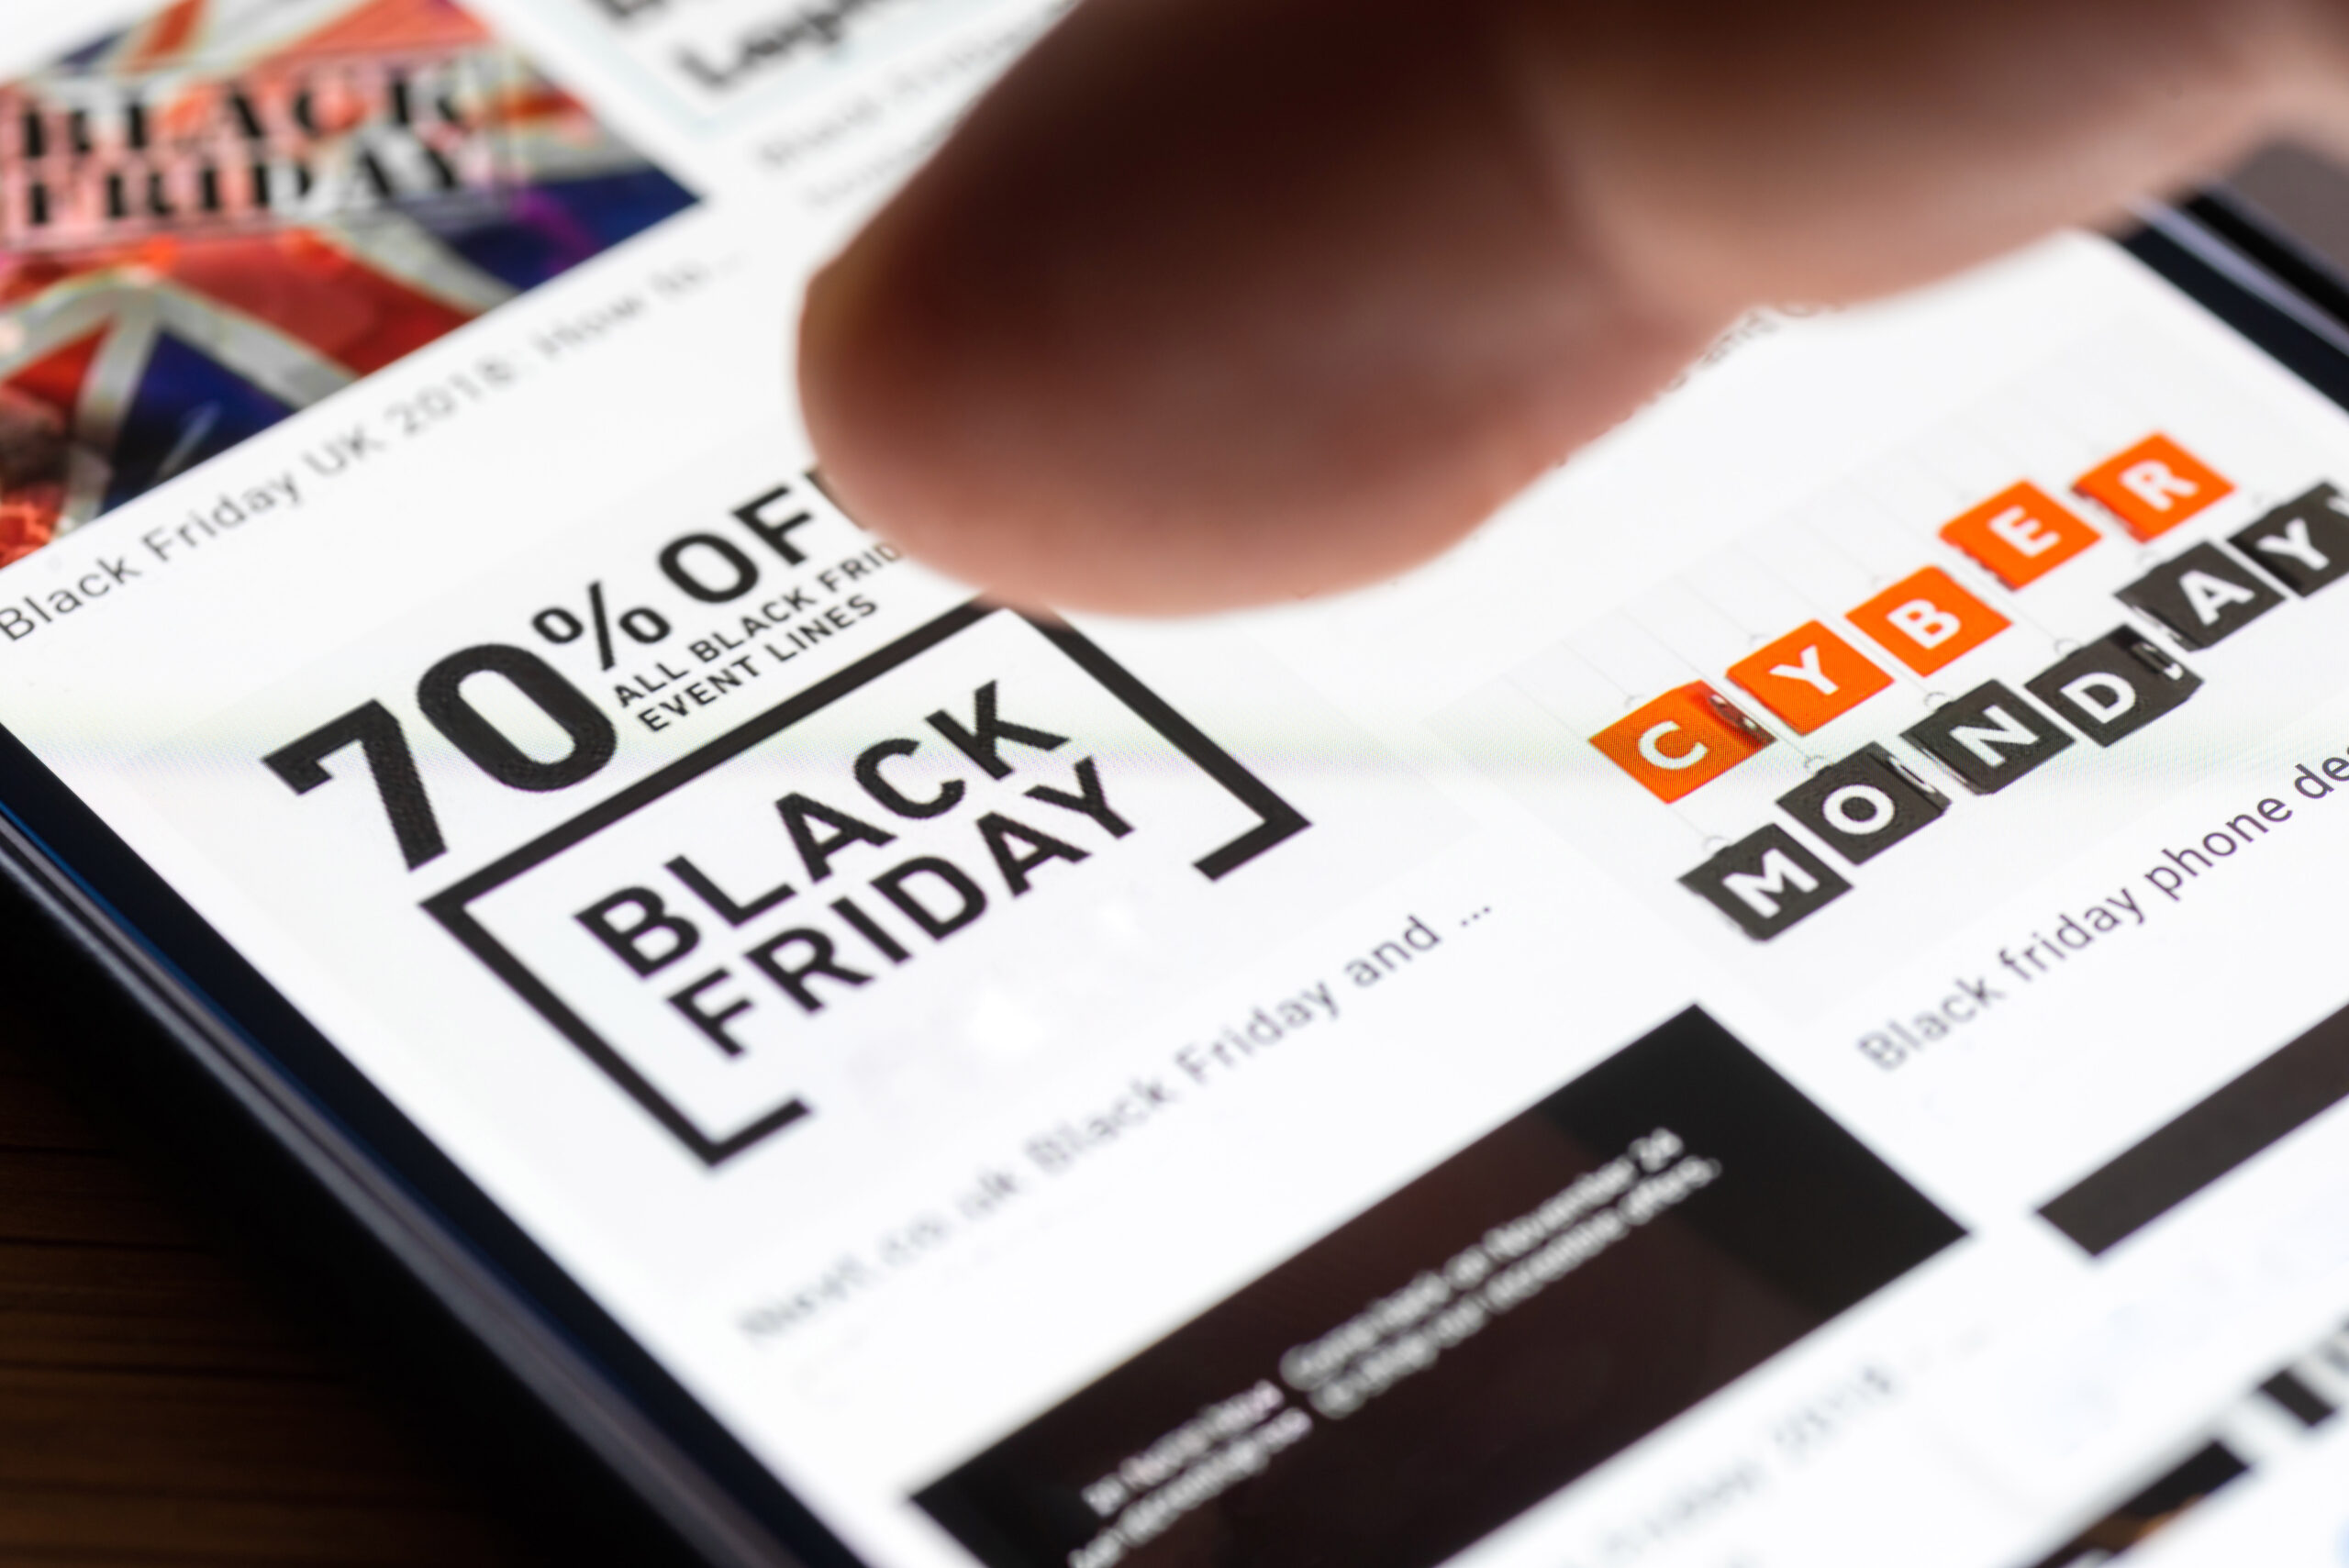 70% off coupon on mobile with user's finger hovering over deal